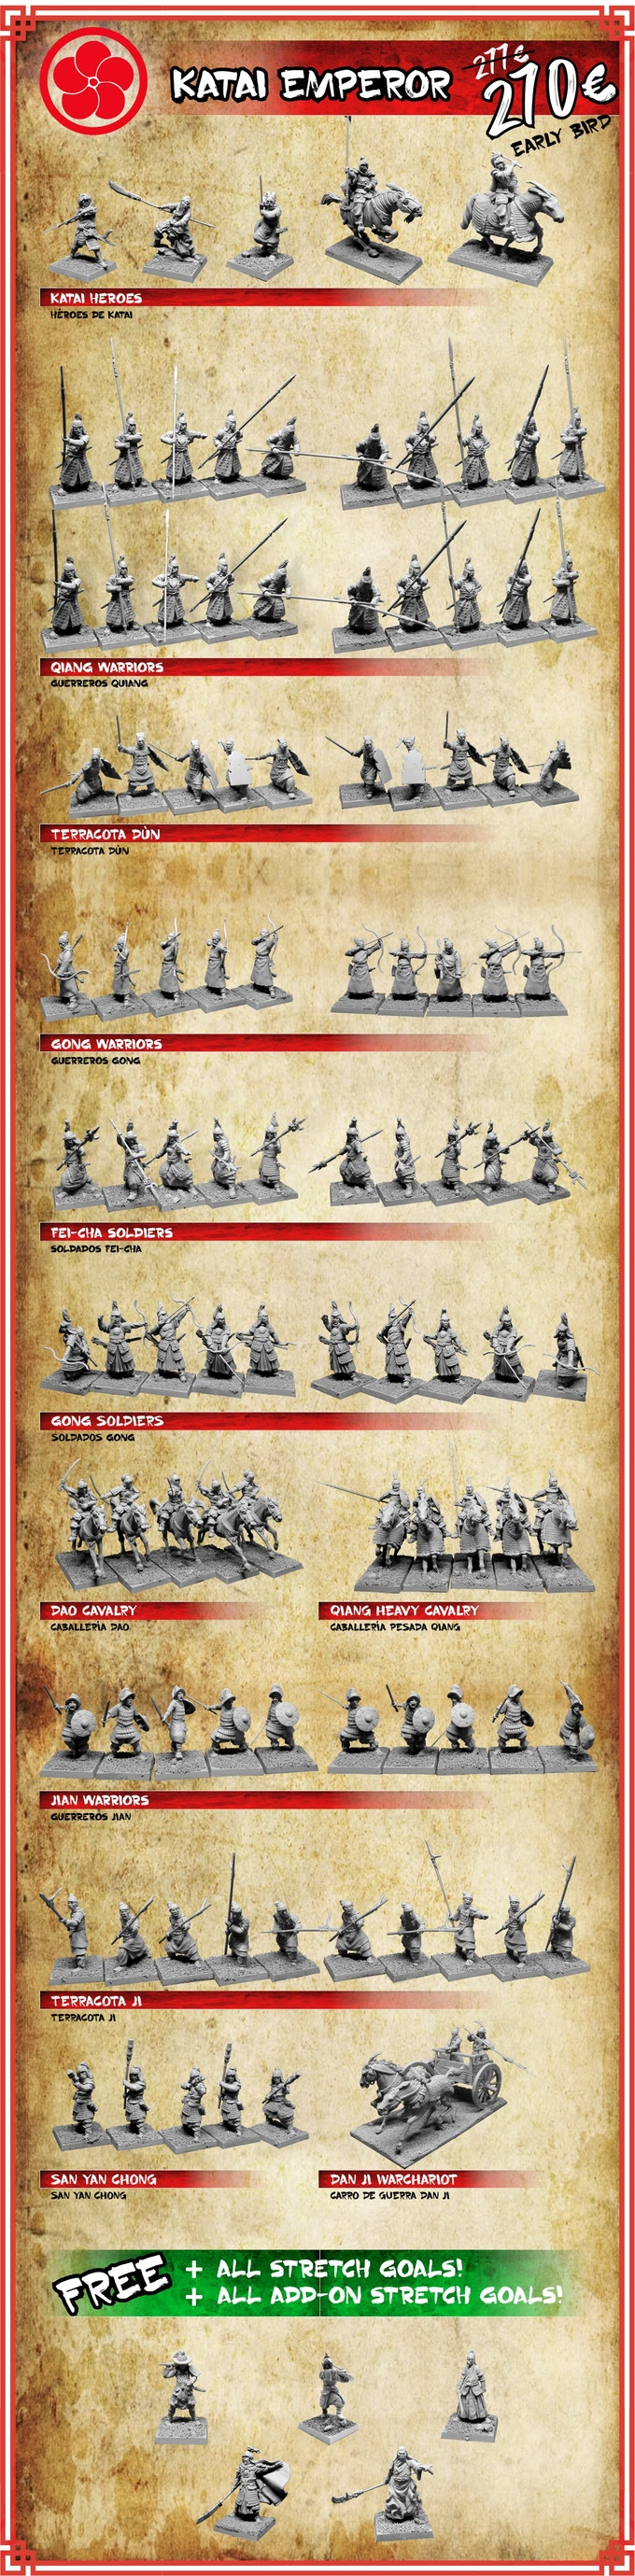 Katai Empire Pledge - Zenit Miniatures